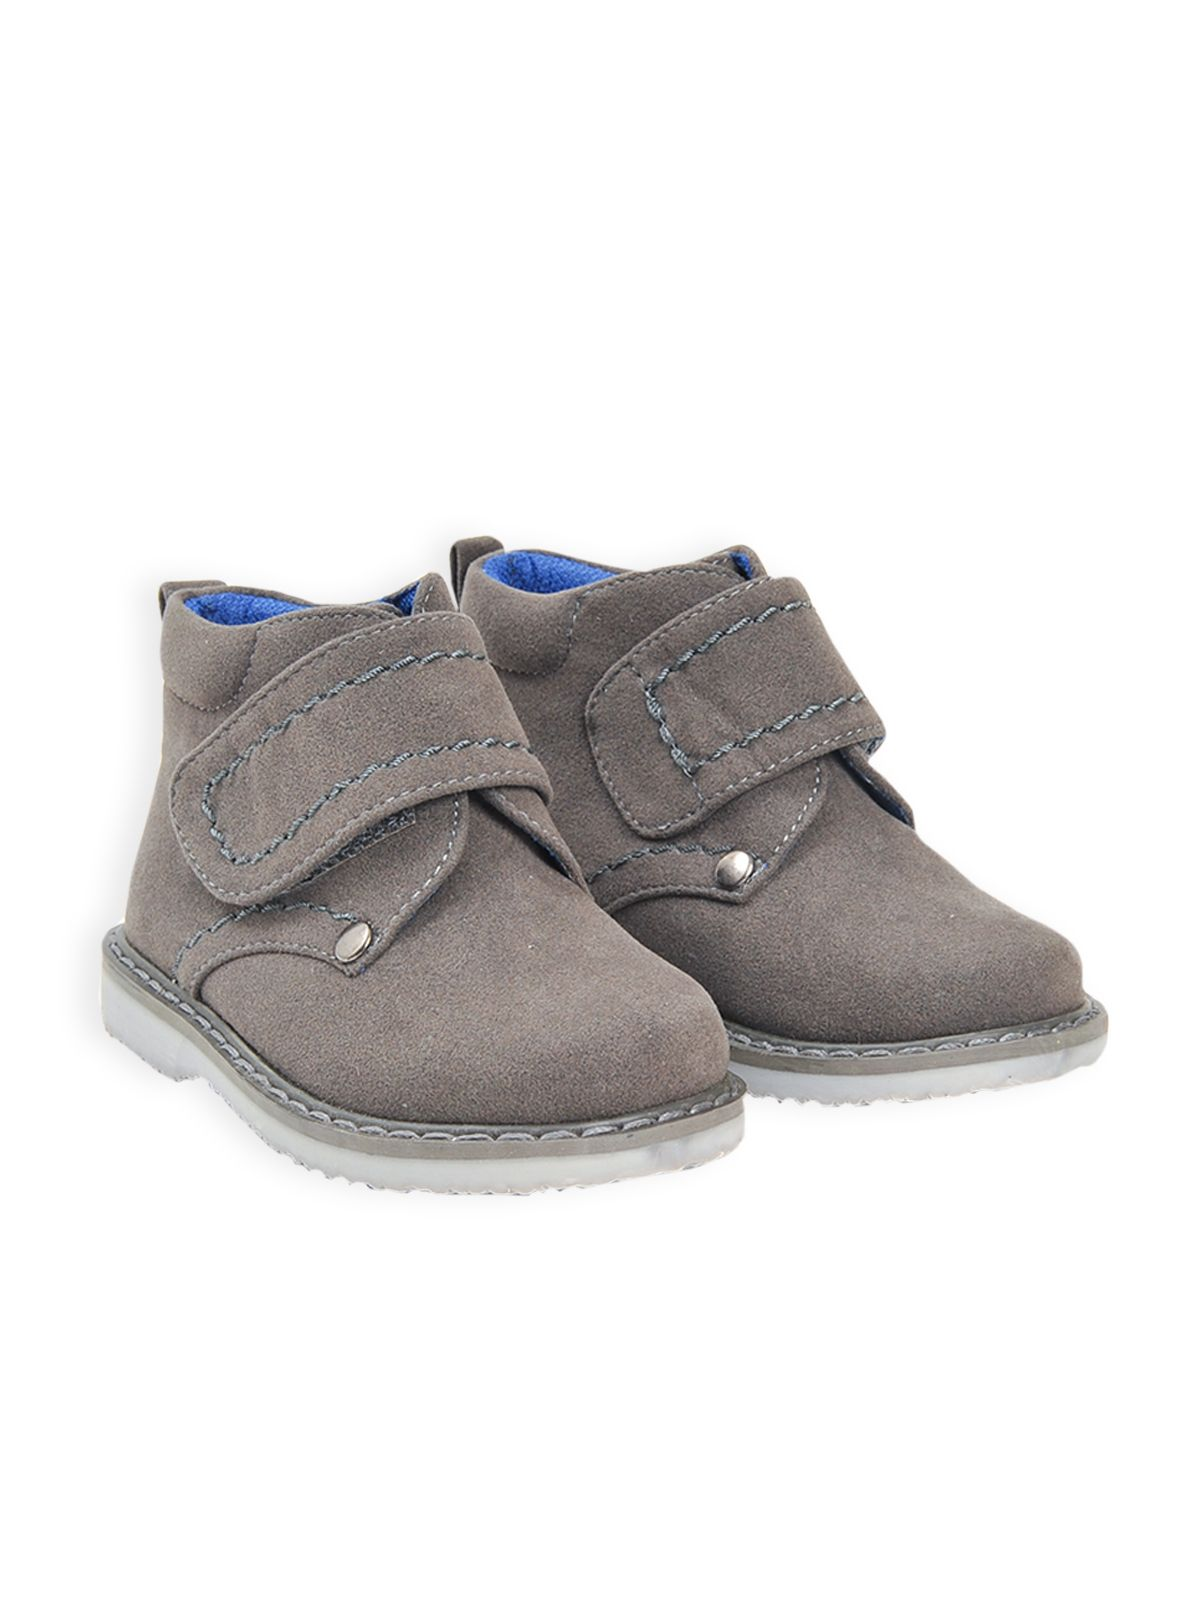 Boys adventure velcro boot